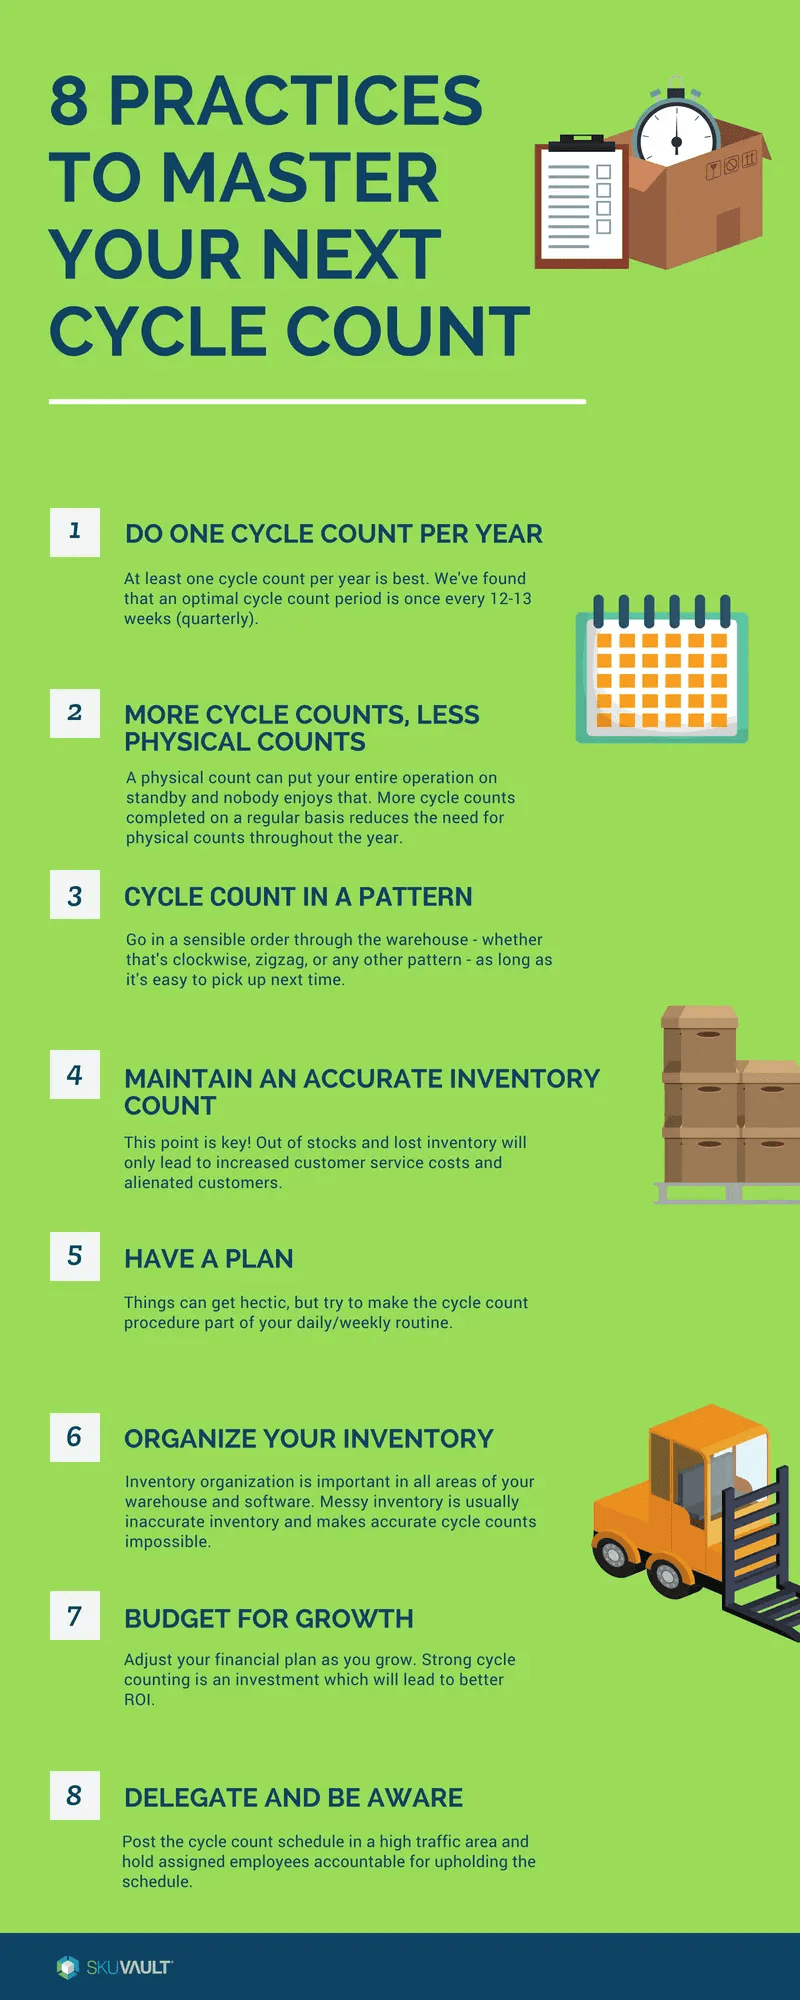 8 Practices To Master Your Next Cycle Count